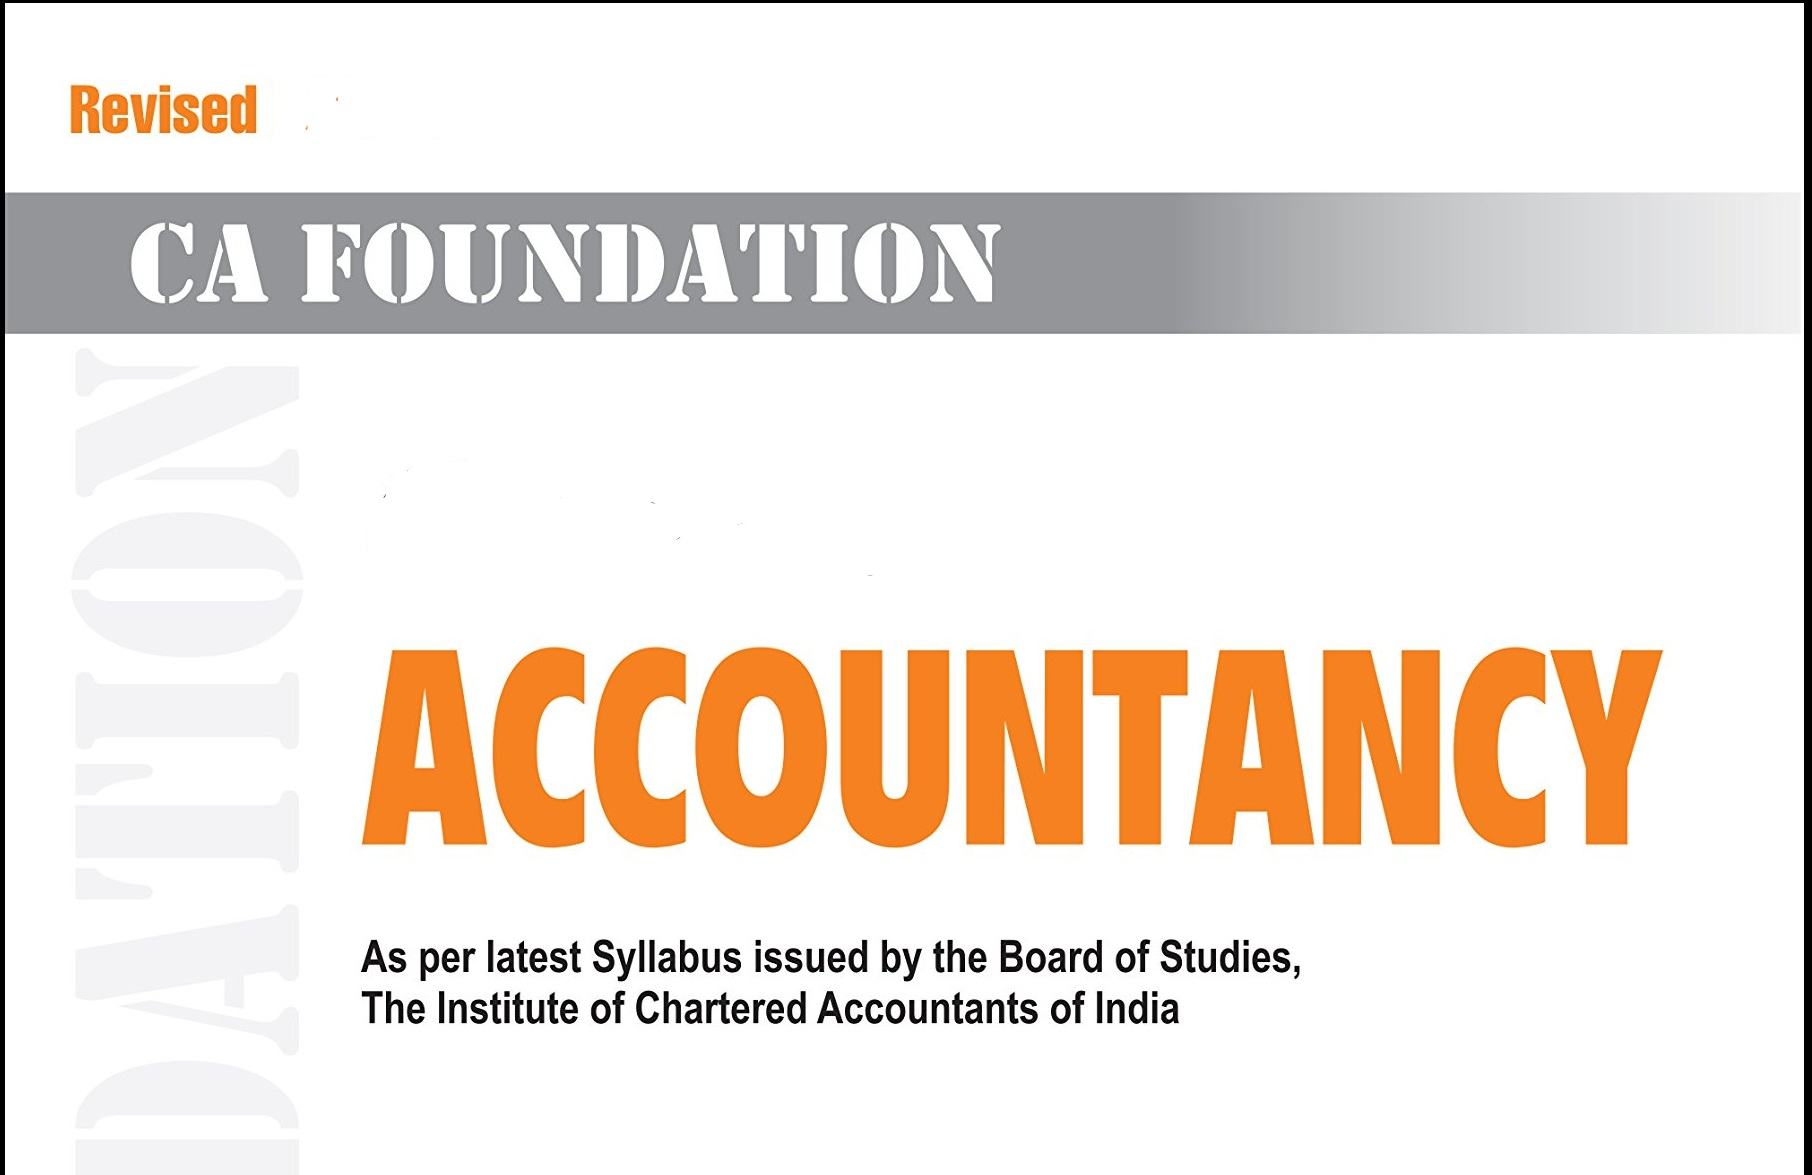 Paper-1: Principles and Practice of Accounting